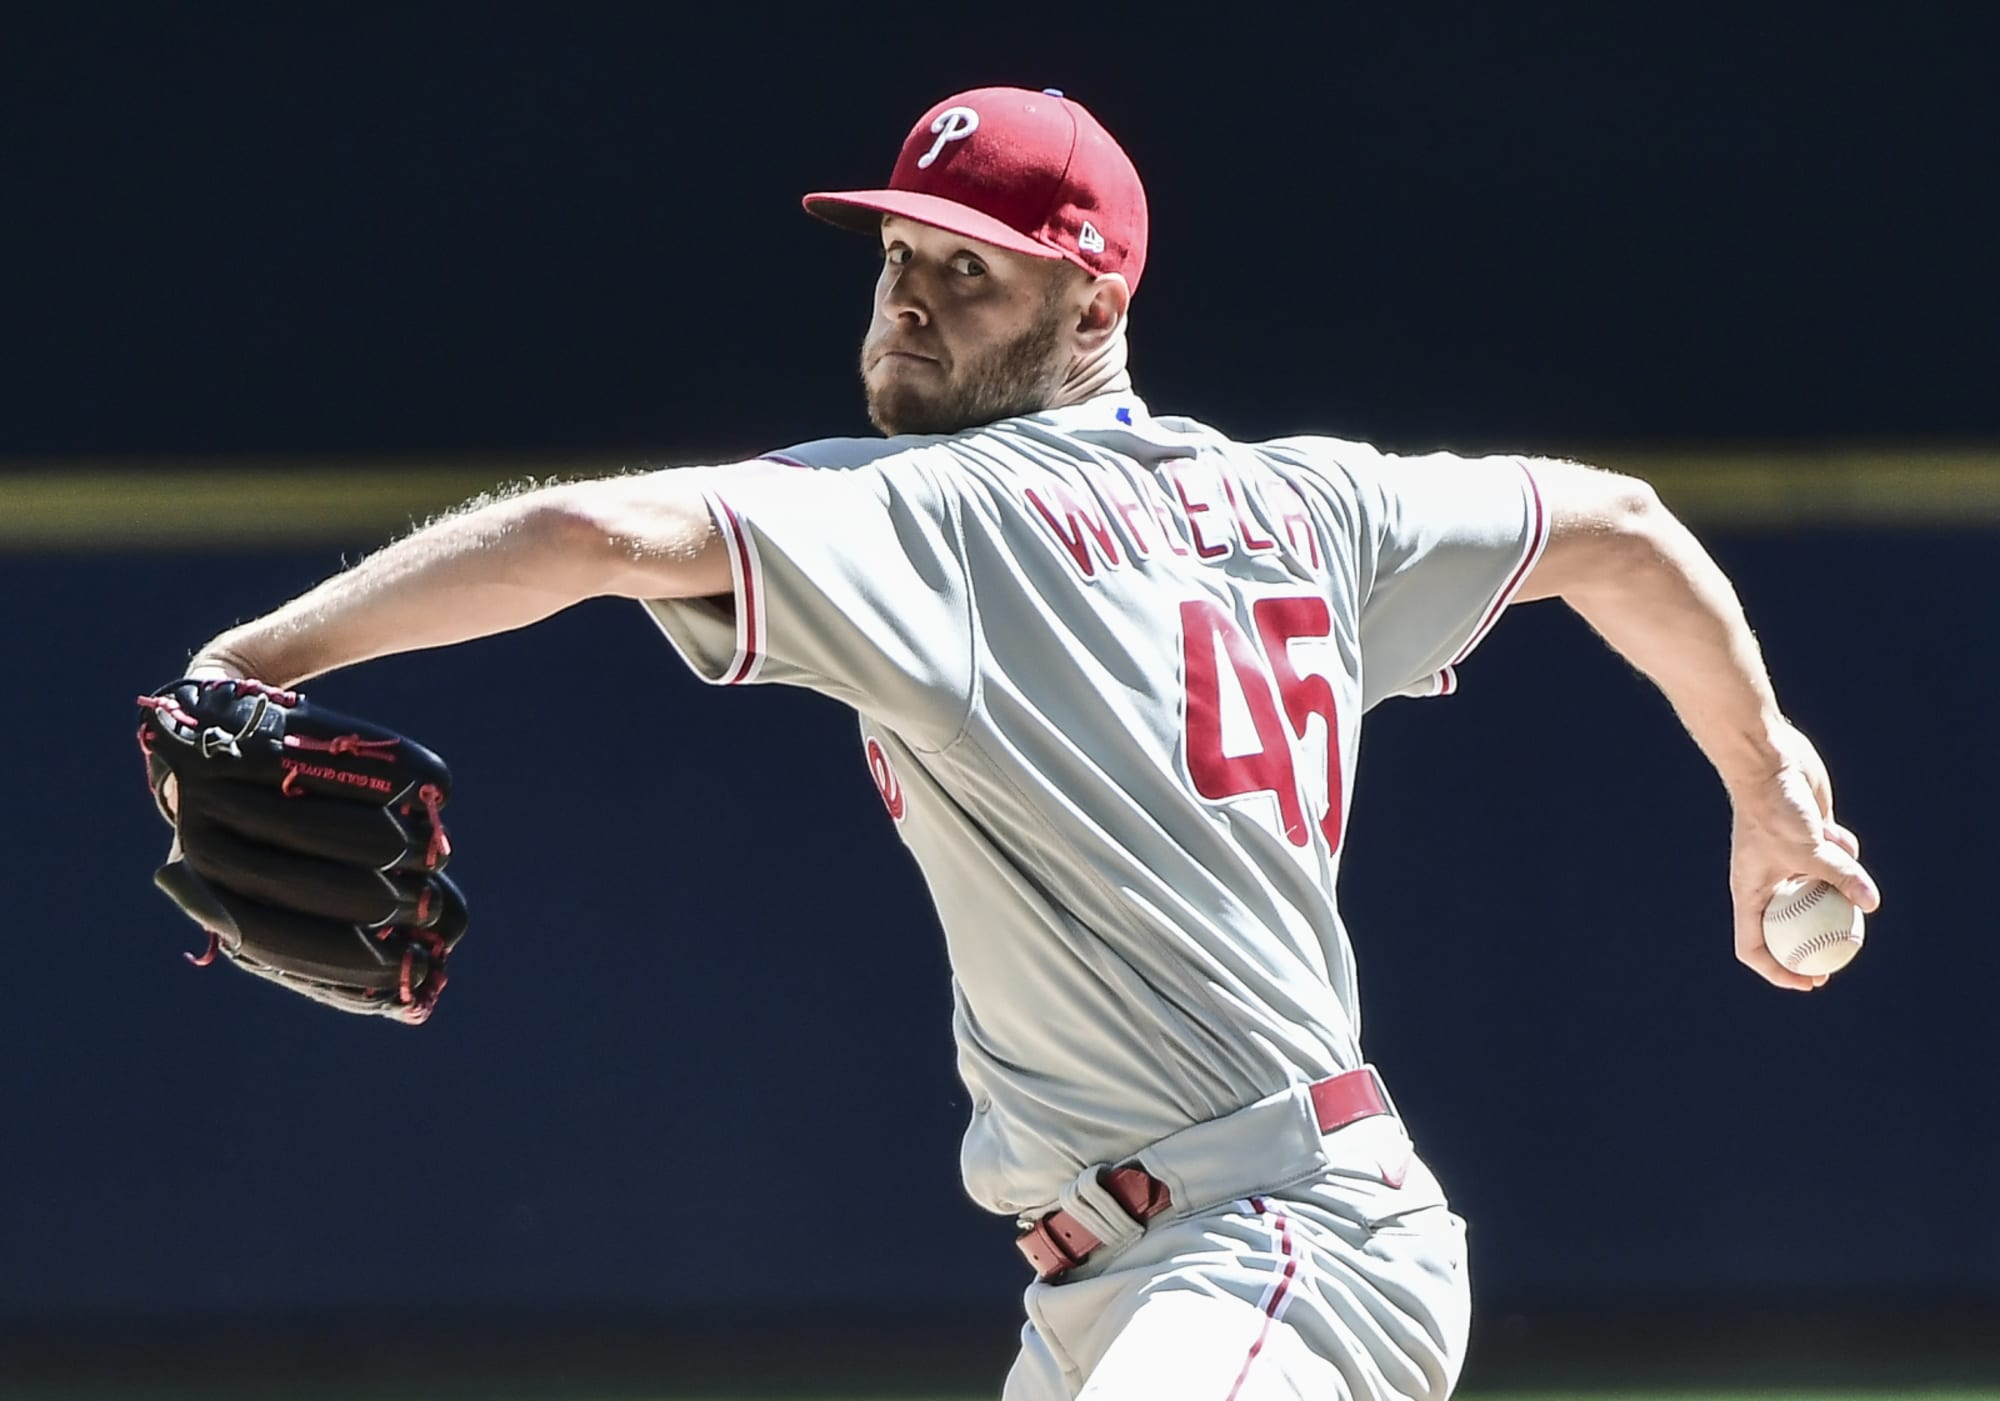 Phillies Game Today: Phillies vs Mets Lineup, Odds, Prediction, Pick, Pitcher, TV Channel for September 17